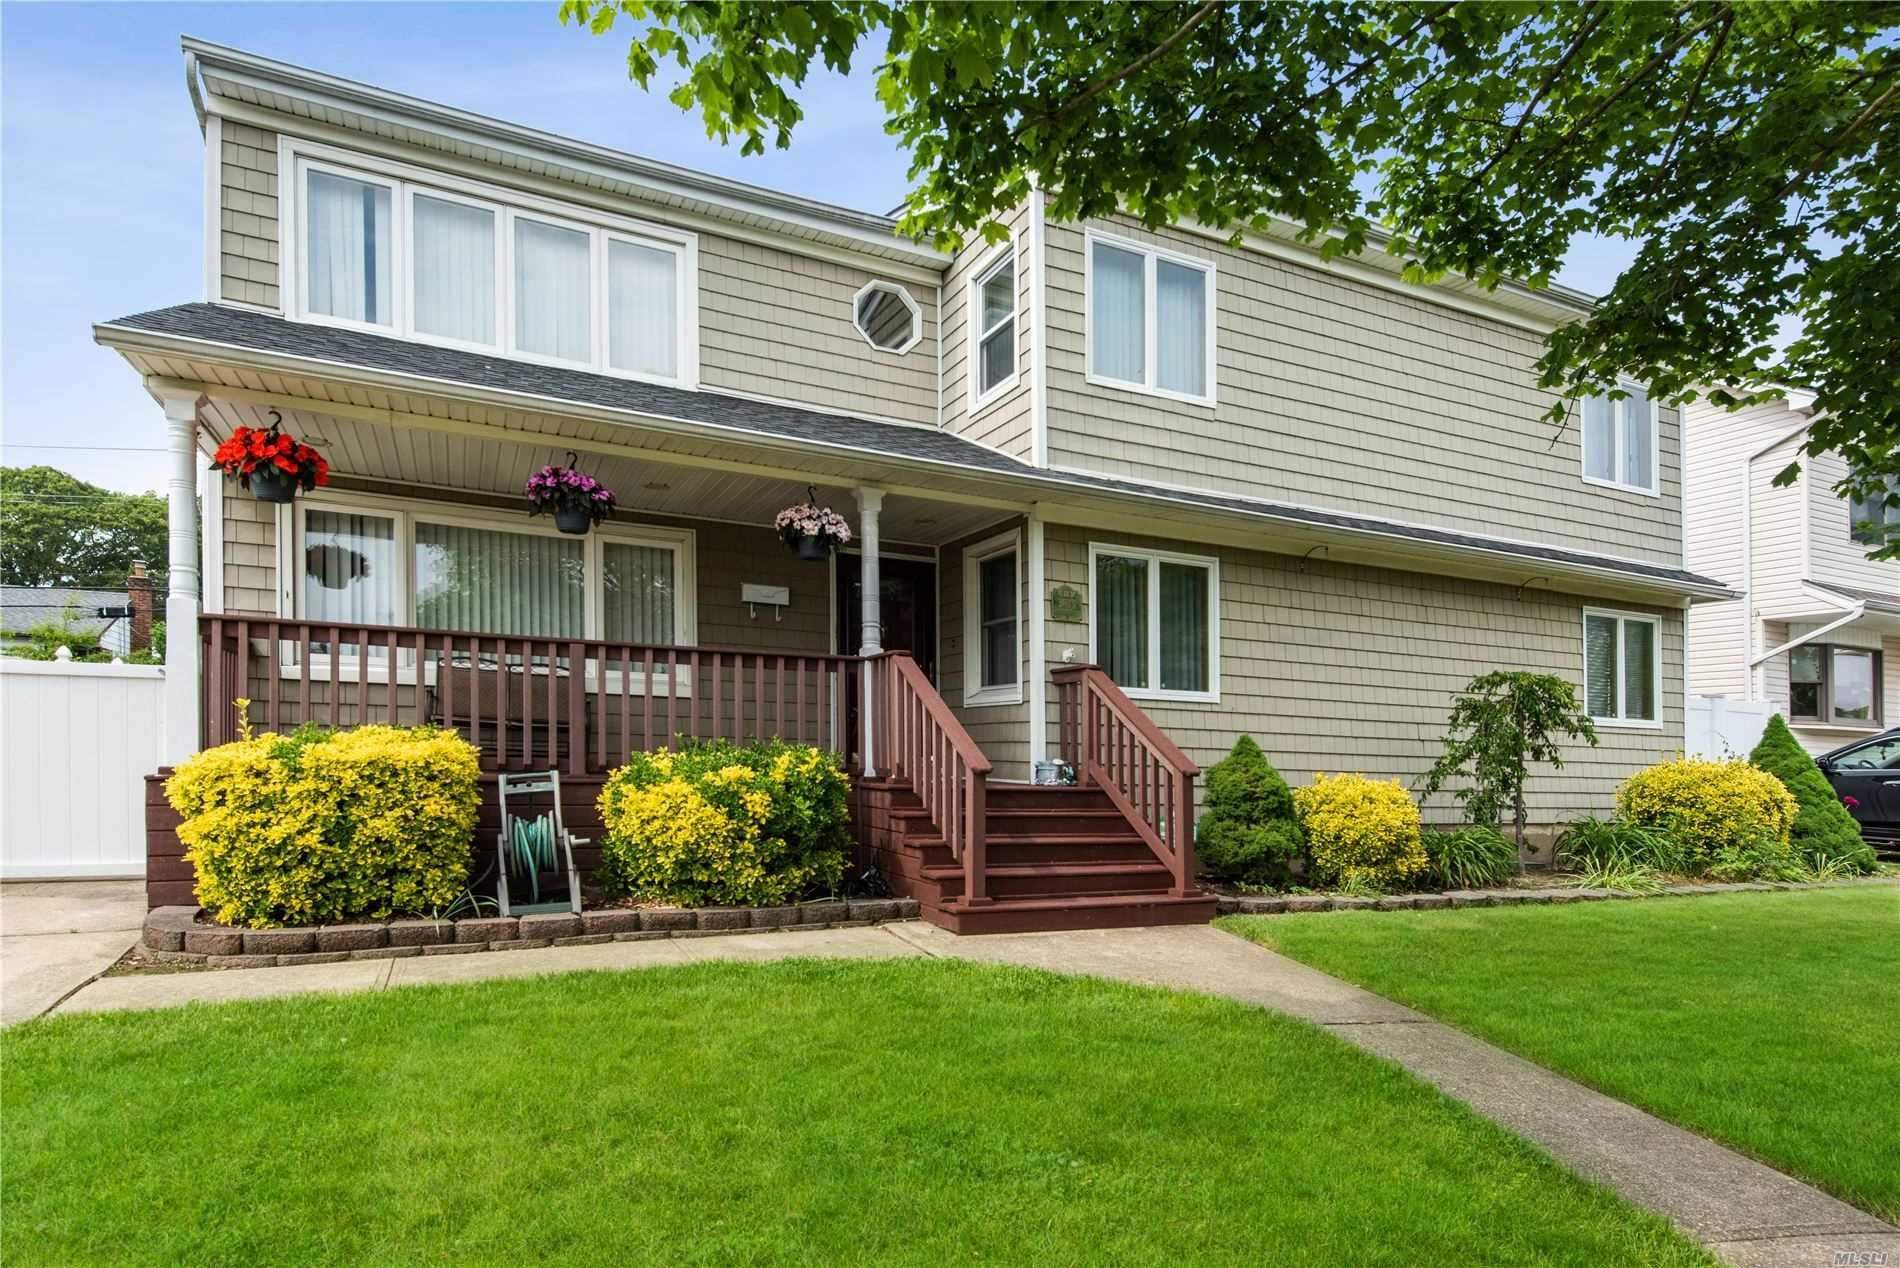 3615 Woodward Ave, Seaford, NY 11783 - MLS#: 3218823